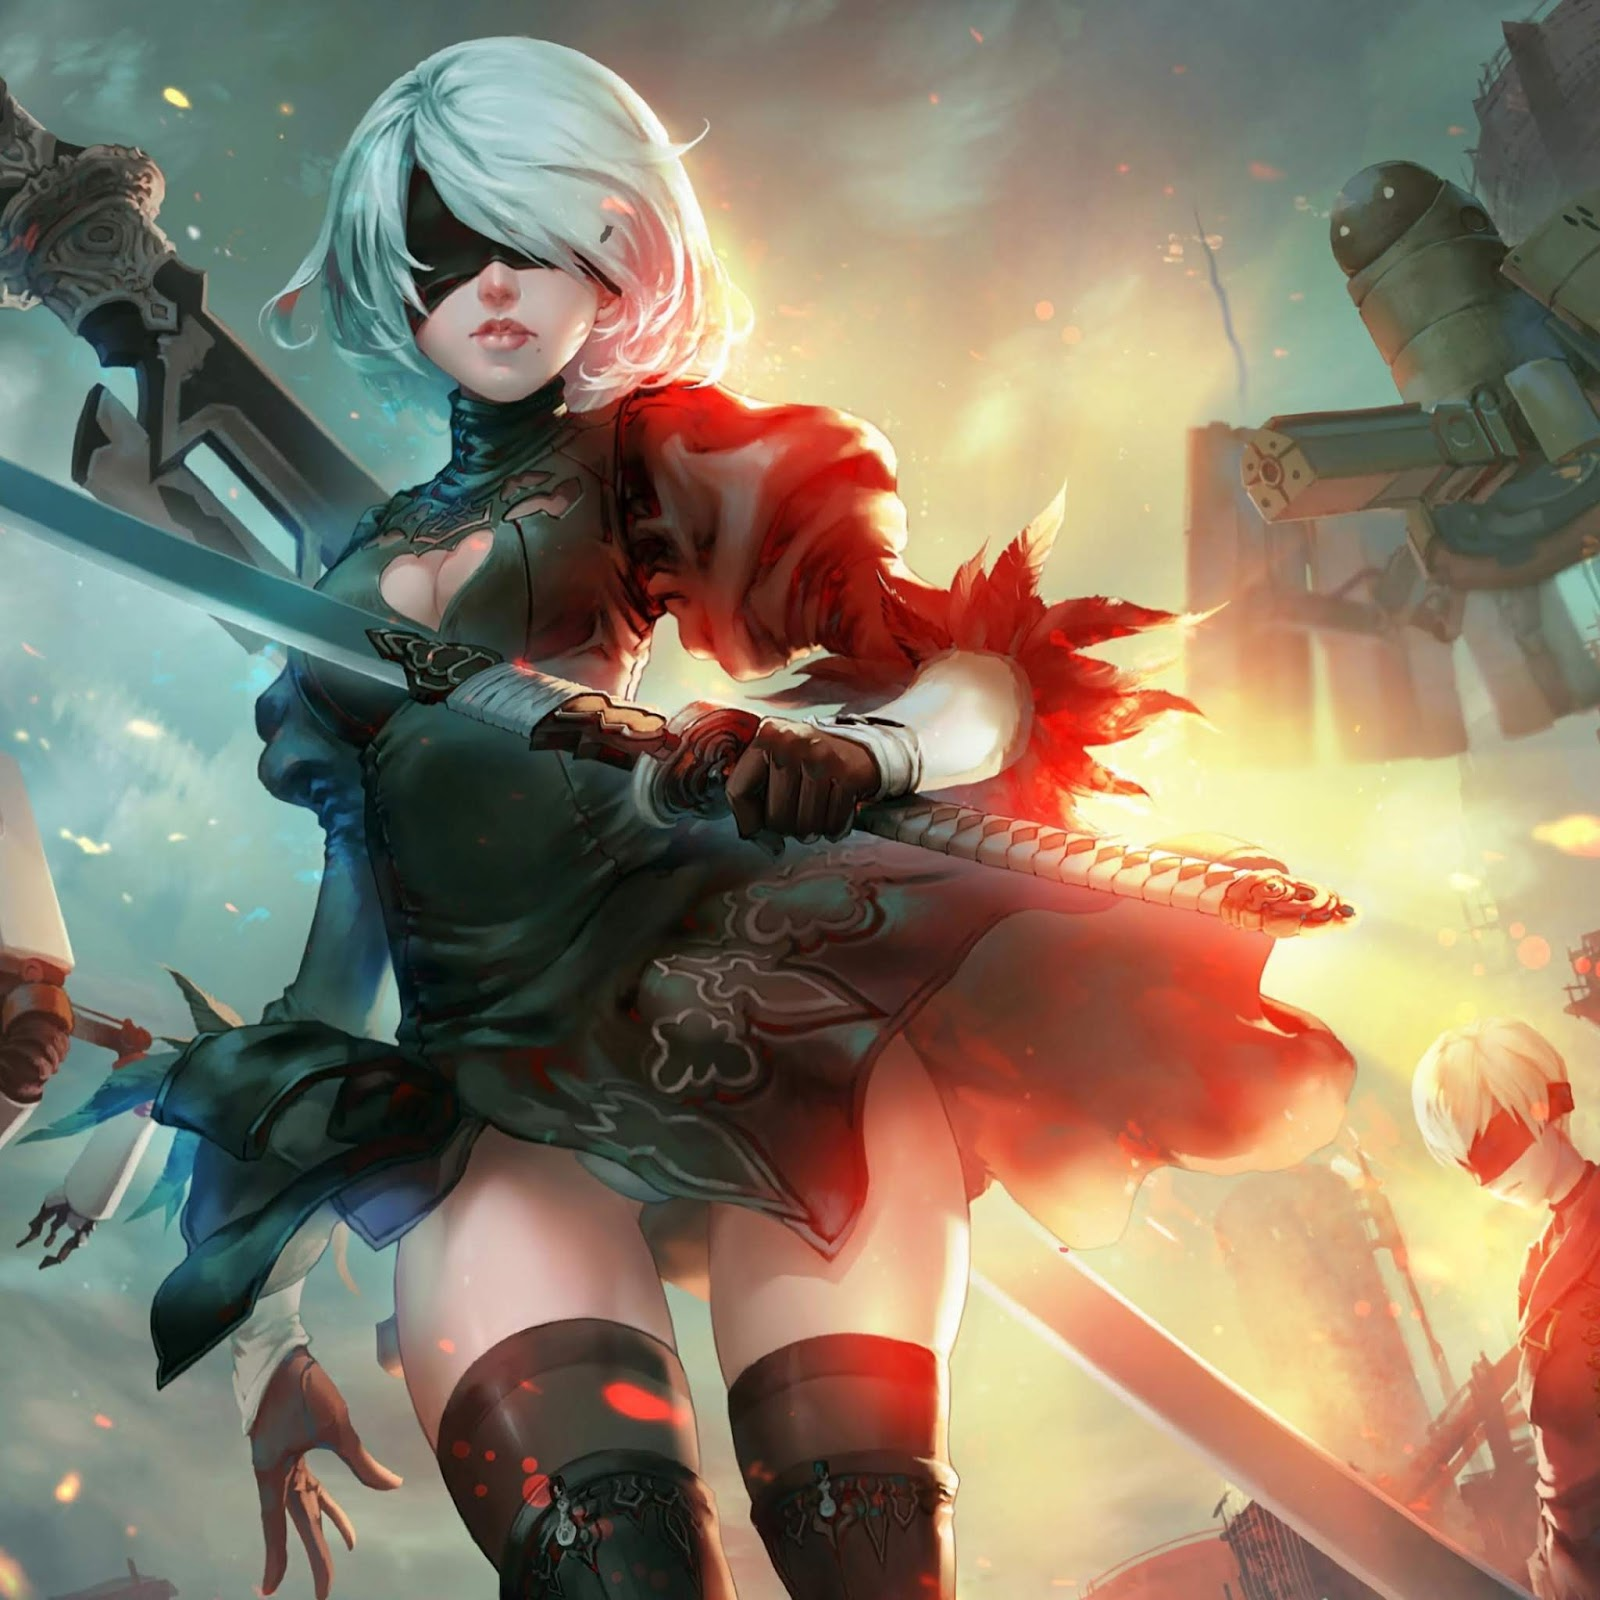 Nier Automata 2B and 9S 4K Animated free download ...